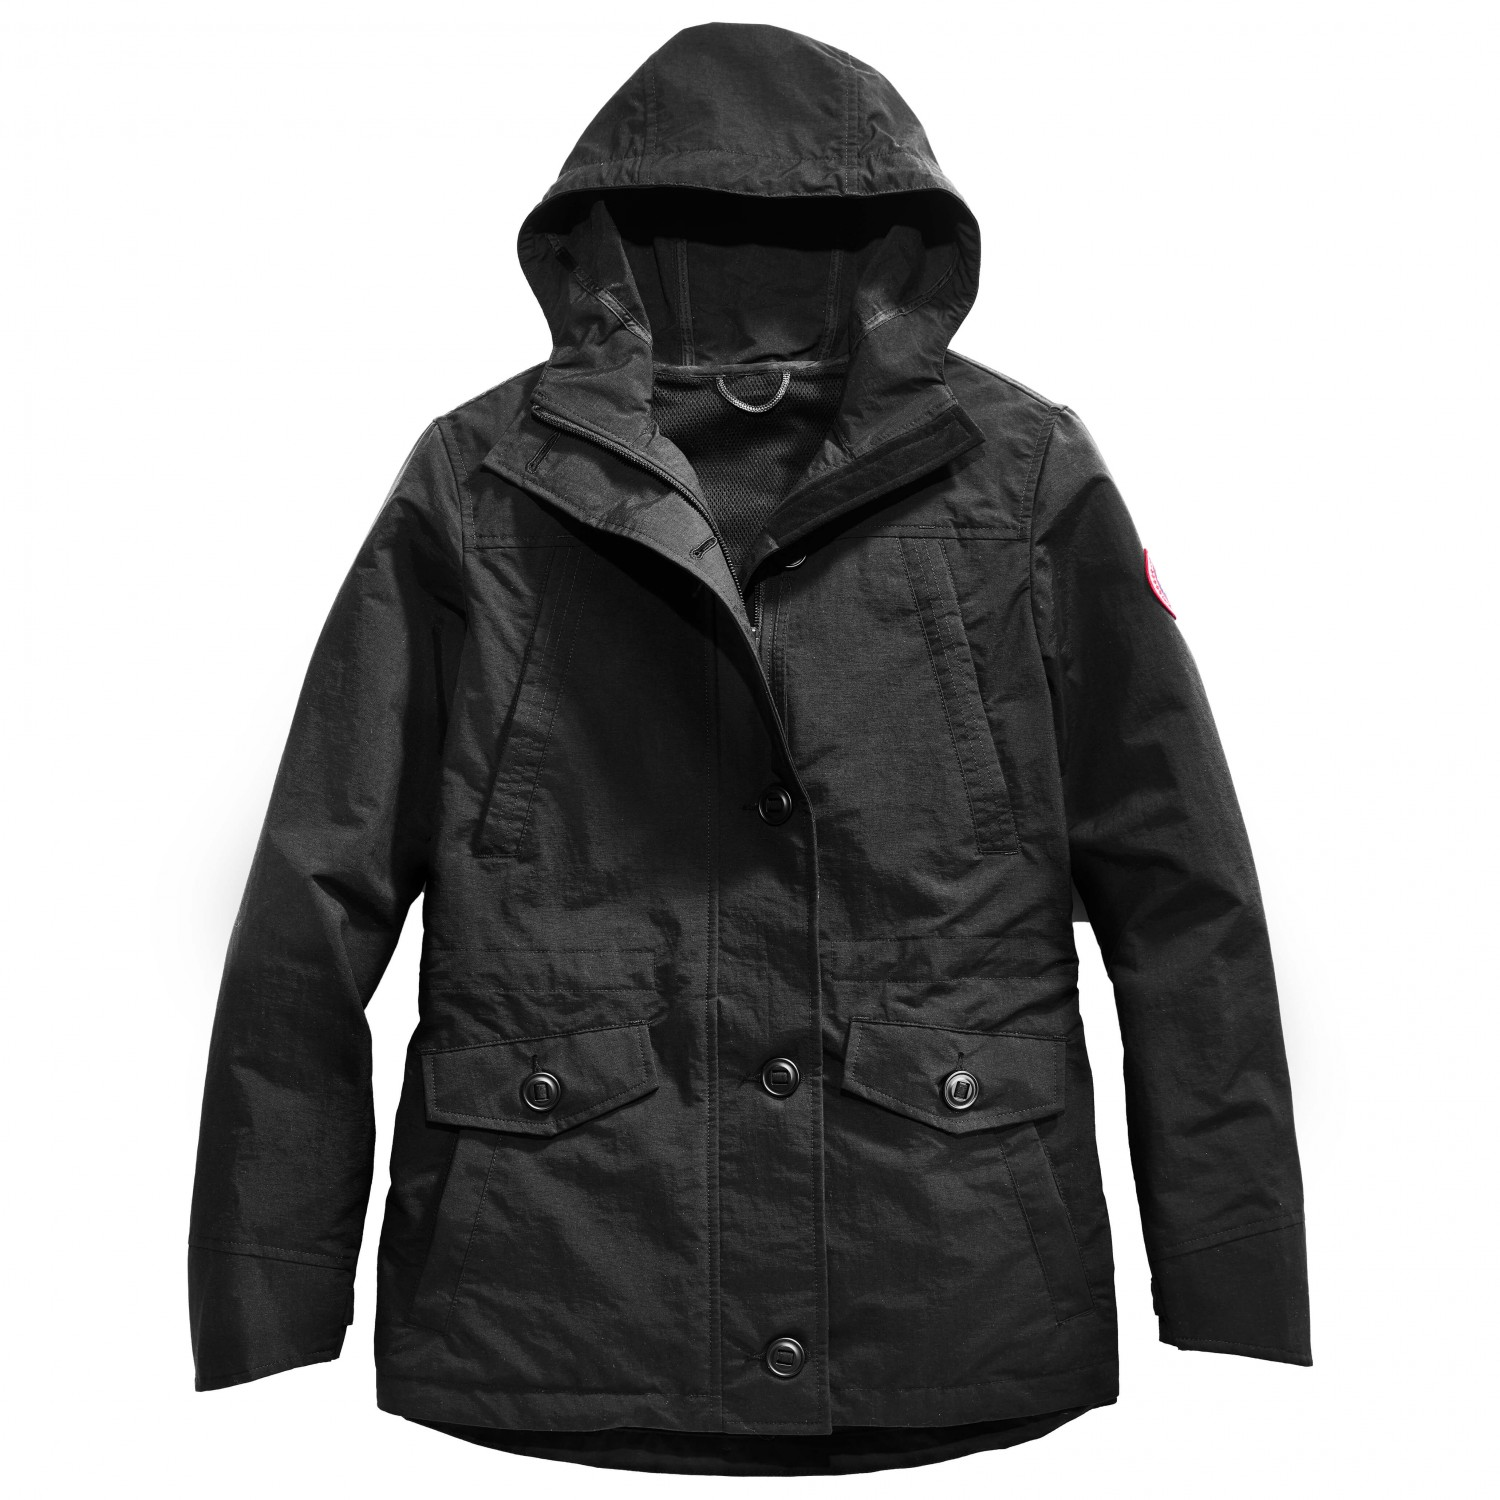 28ee4c2f60d Canada Goose Reid Jacket - Coat Women's | Buy online | Alpinetrek.co.uk